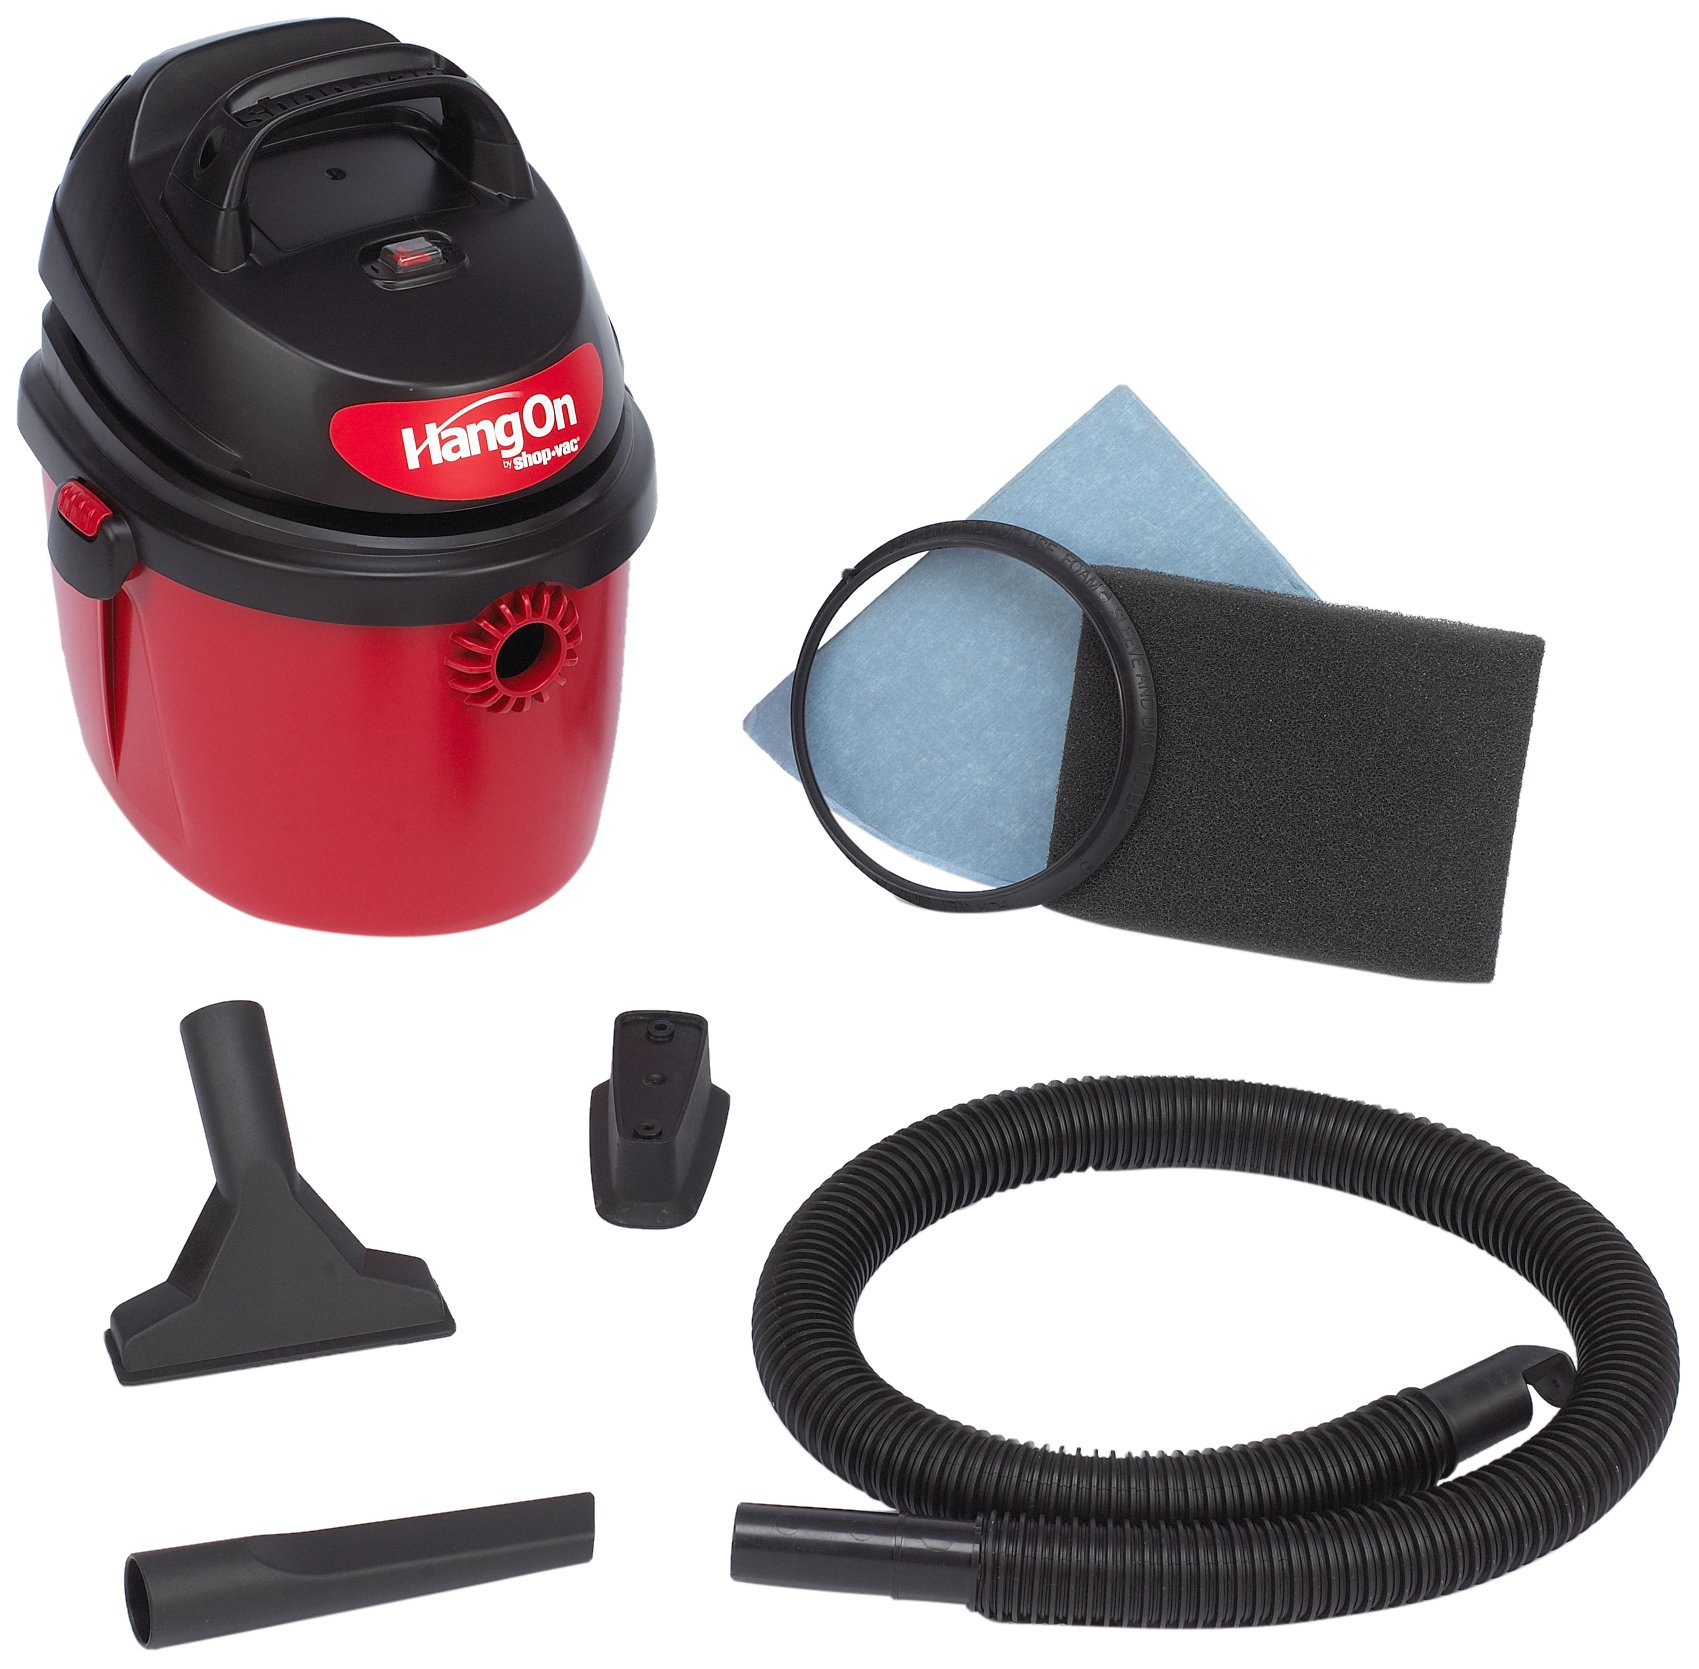 Shop-Vac 5890200 2.5-Gallon 2.5-Peak HP HangOn Wet/Dry Vacuum